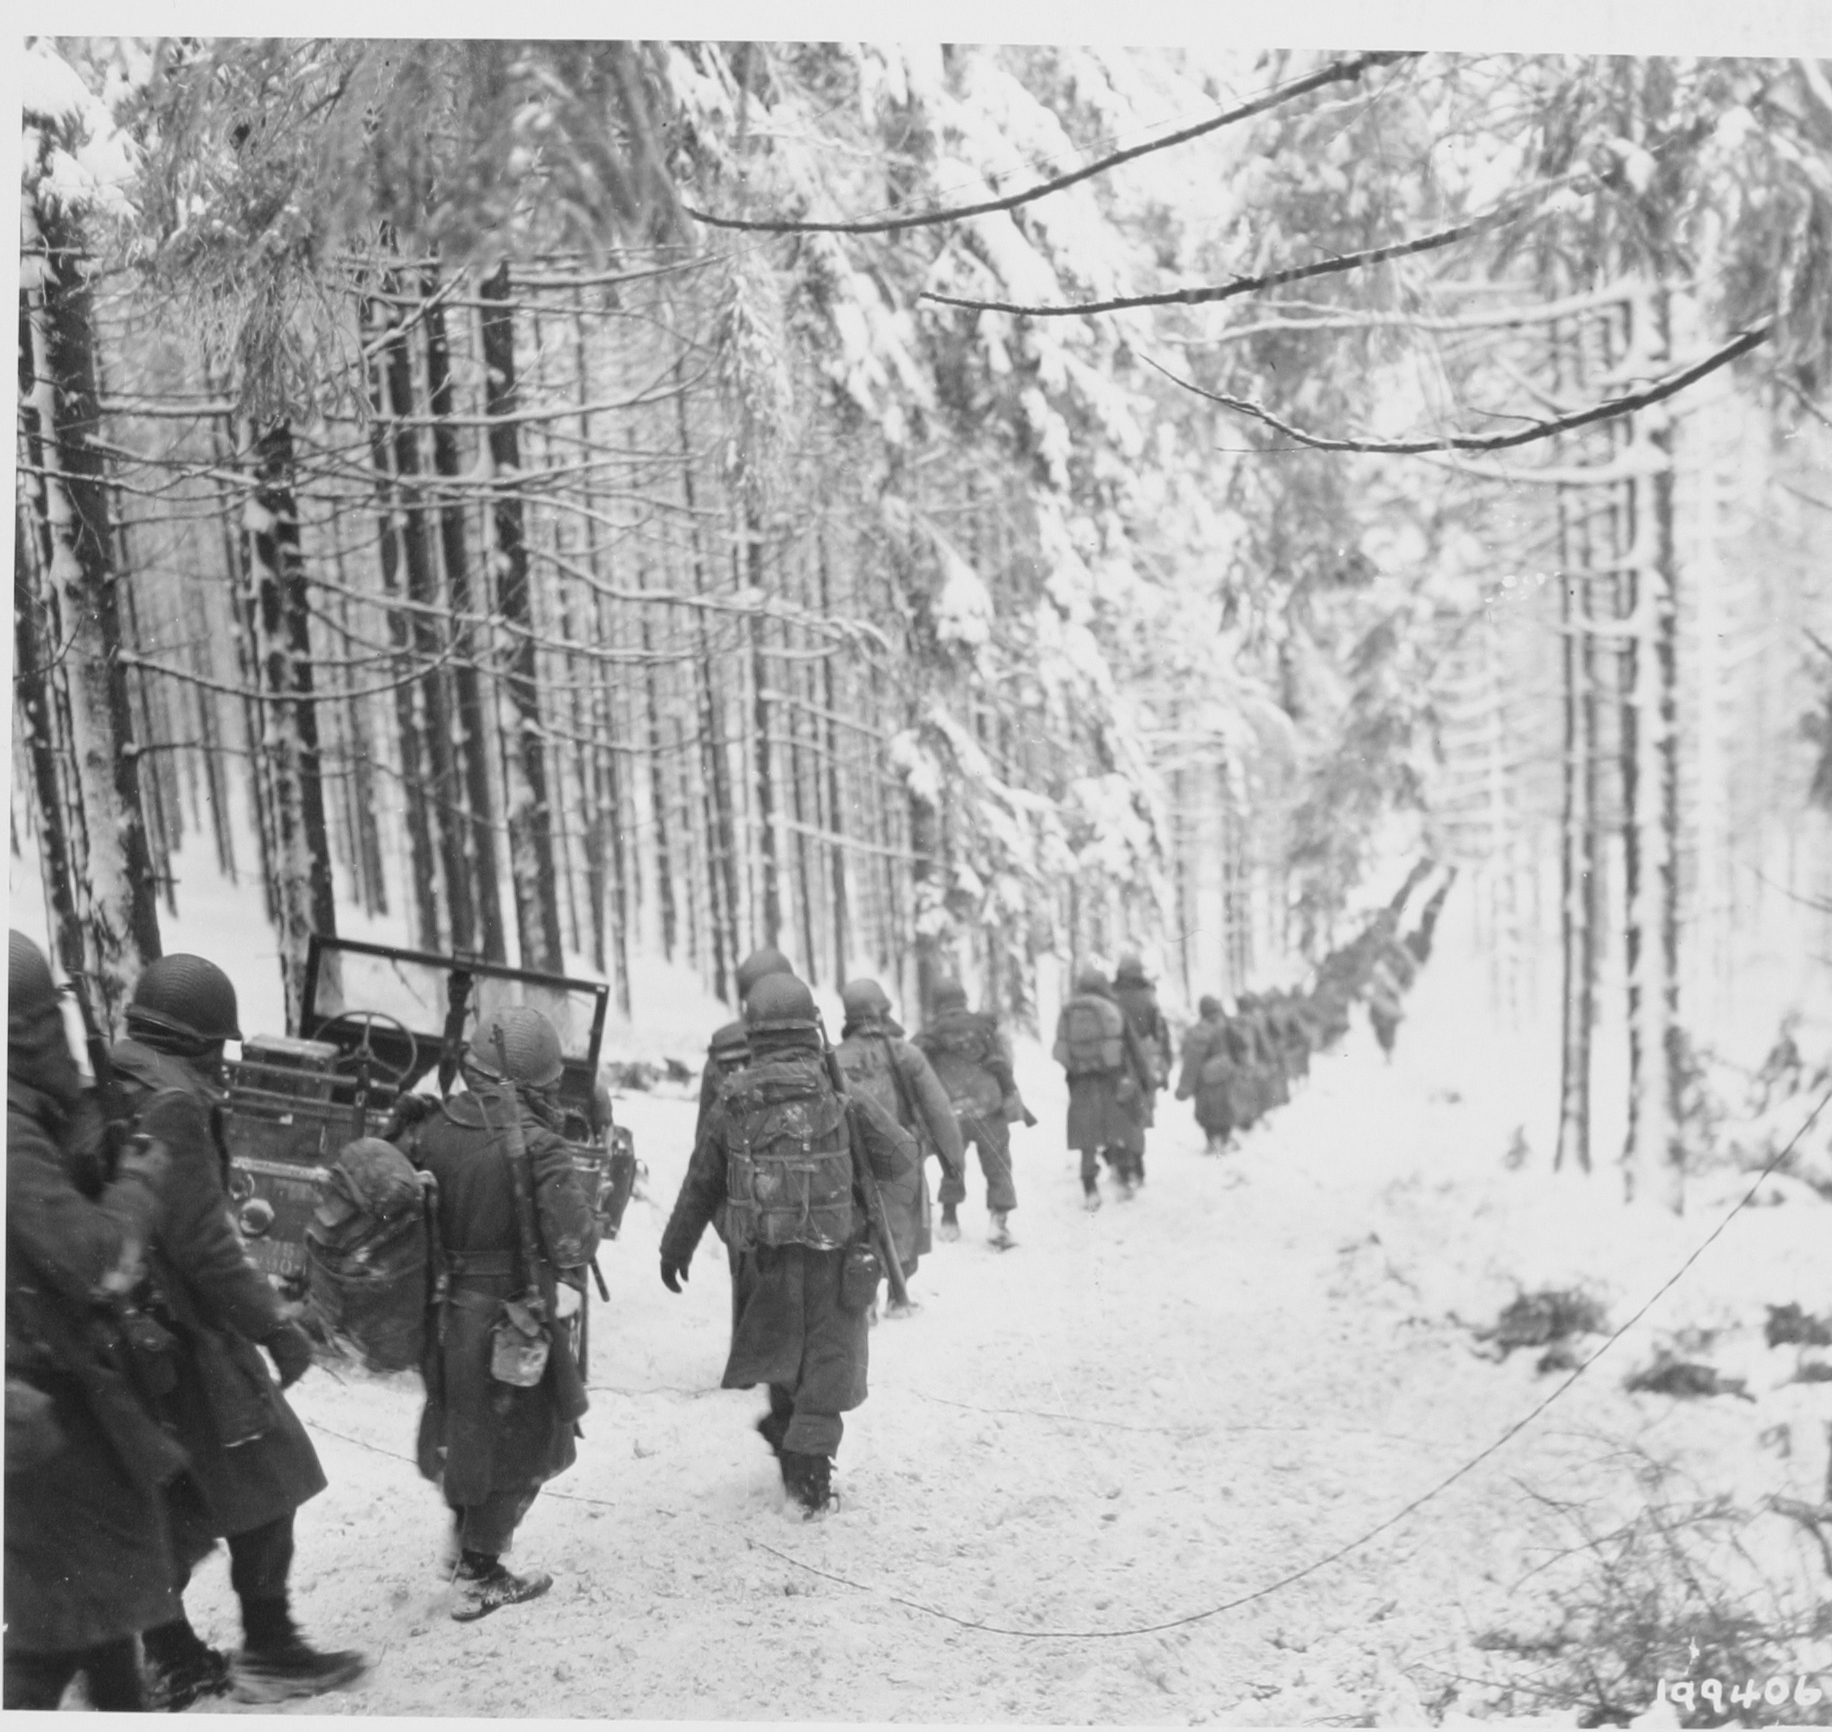 American soldiers during Battle of the Bulge